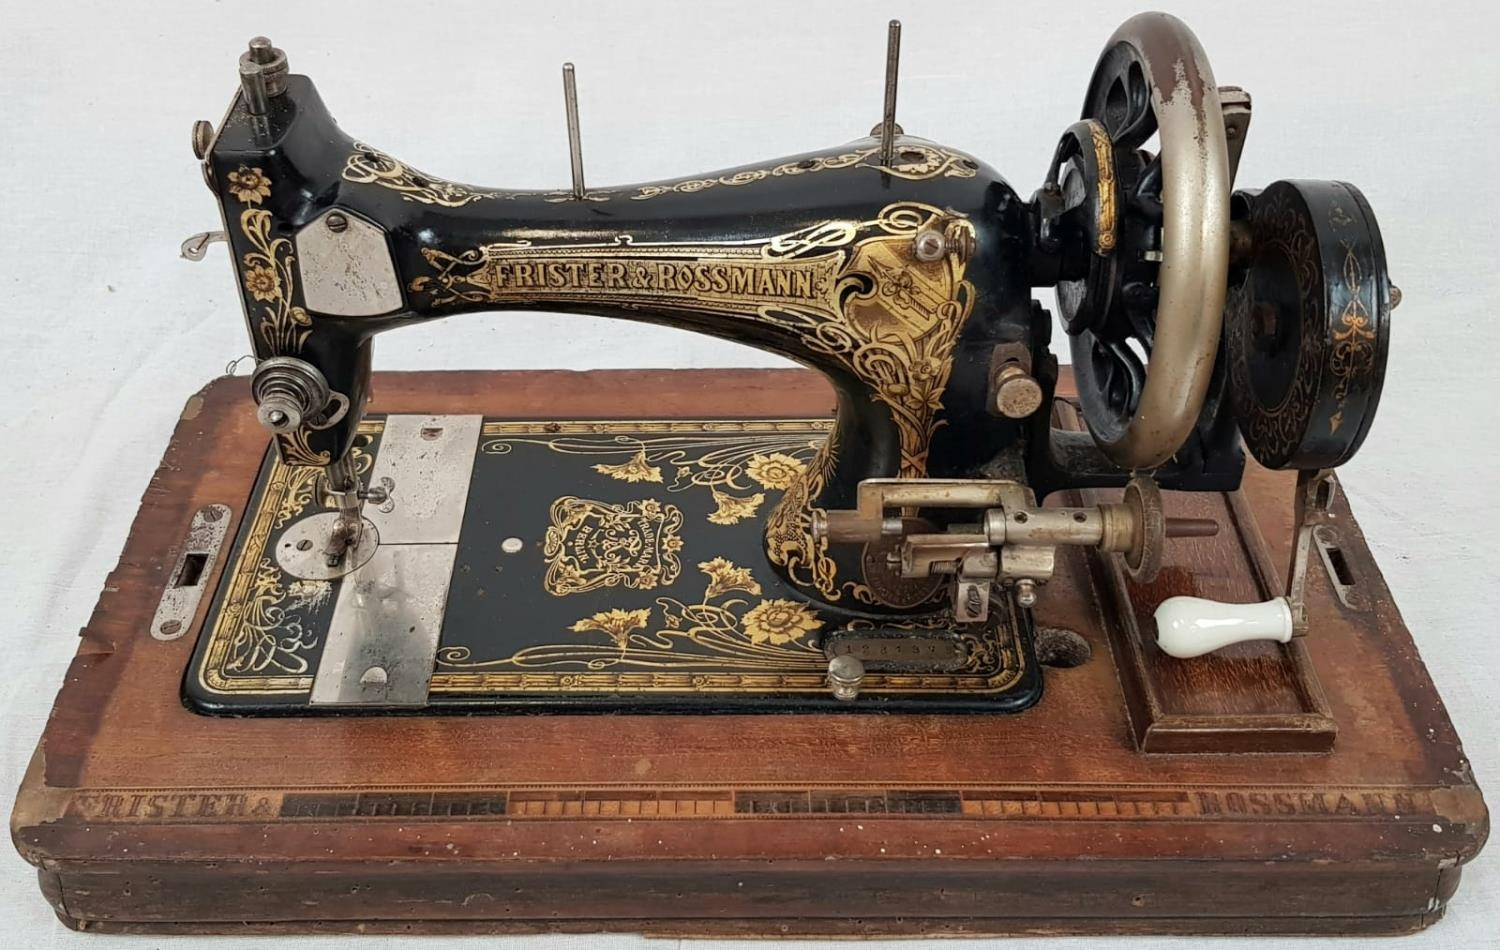 A FINELY DECORATED ANTIQUE SEWING MACHINE IN WOODEN CARRYING CASE MADE BY FRISTER AND ROSSMAN CICA - Image 2 of 5